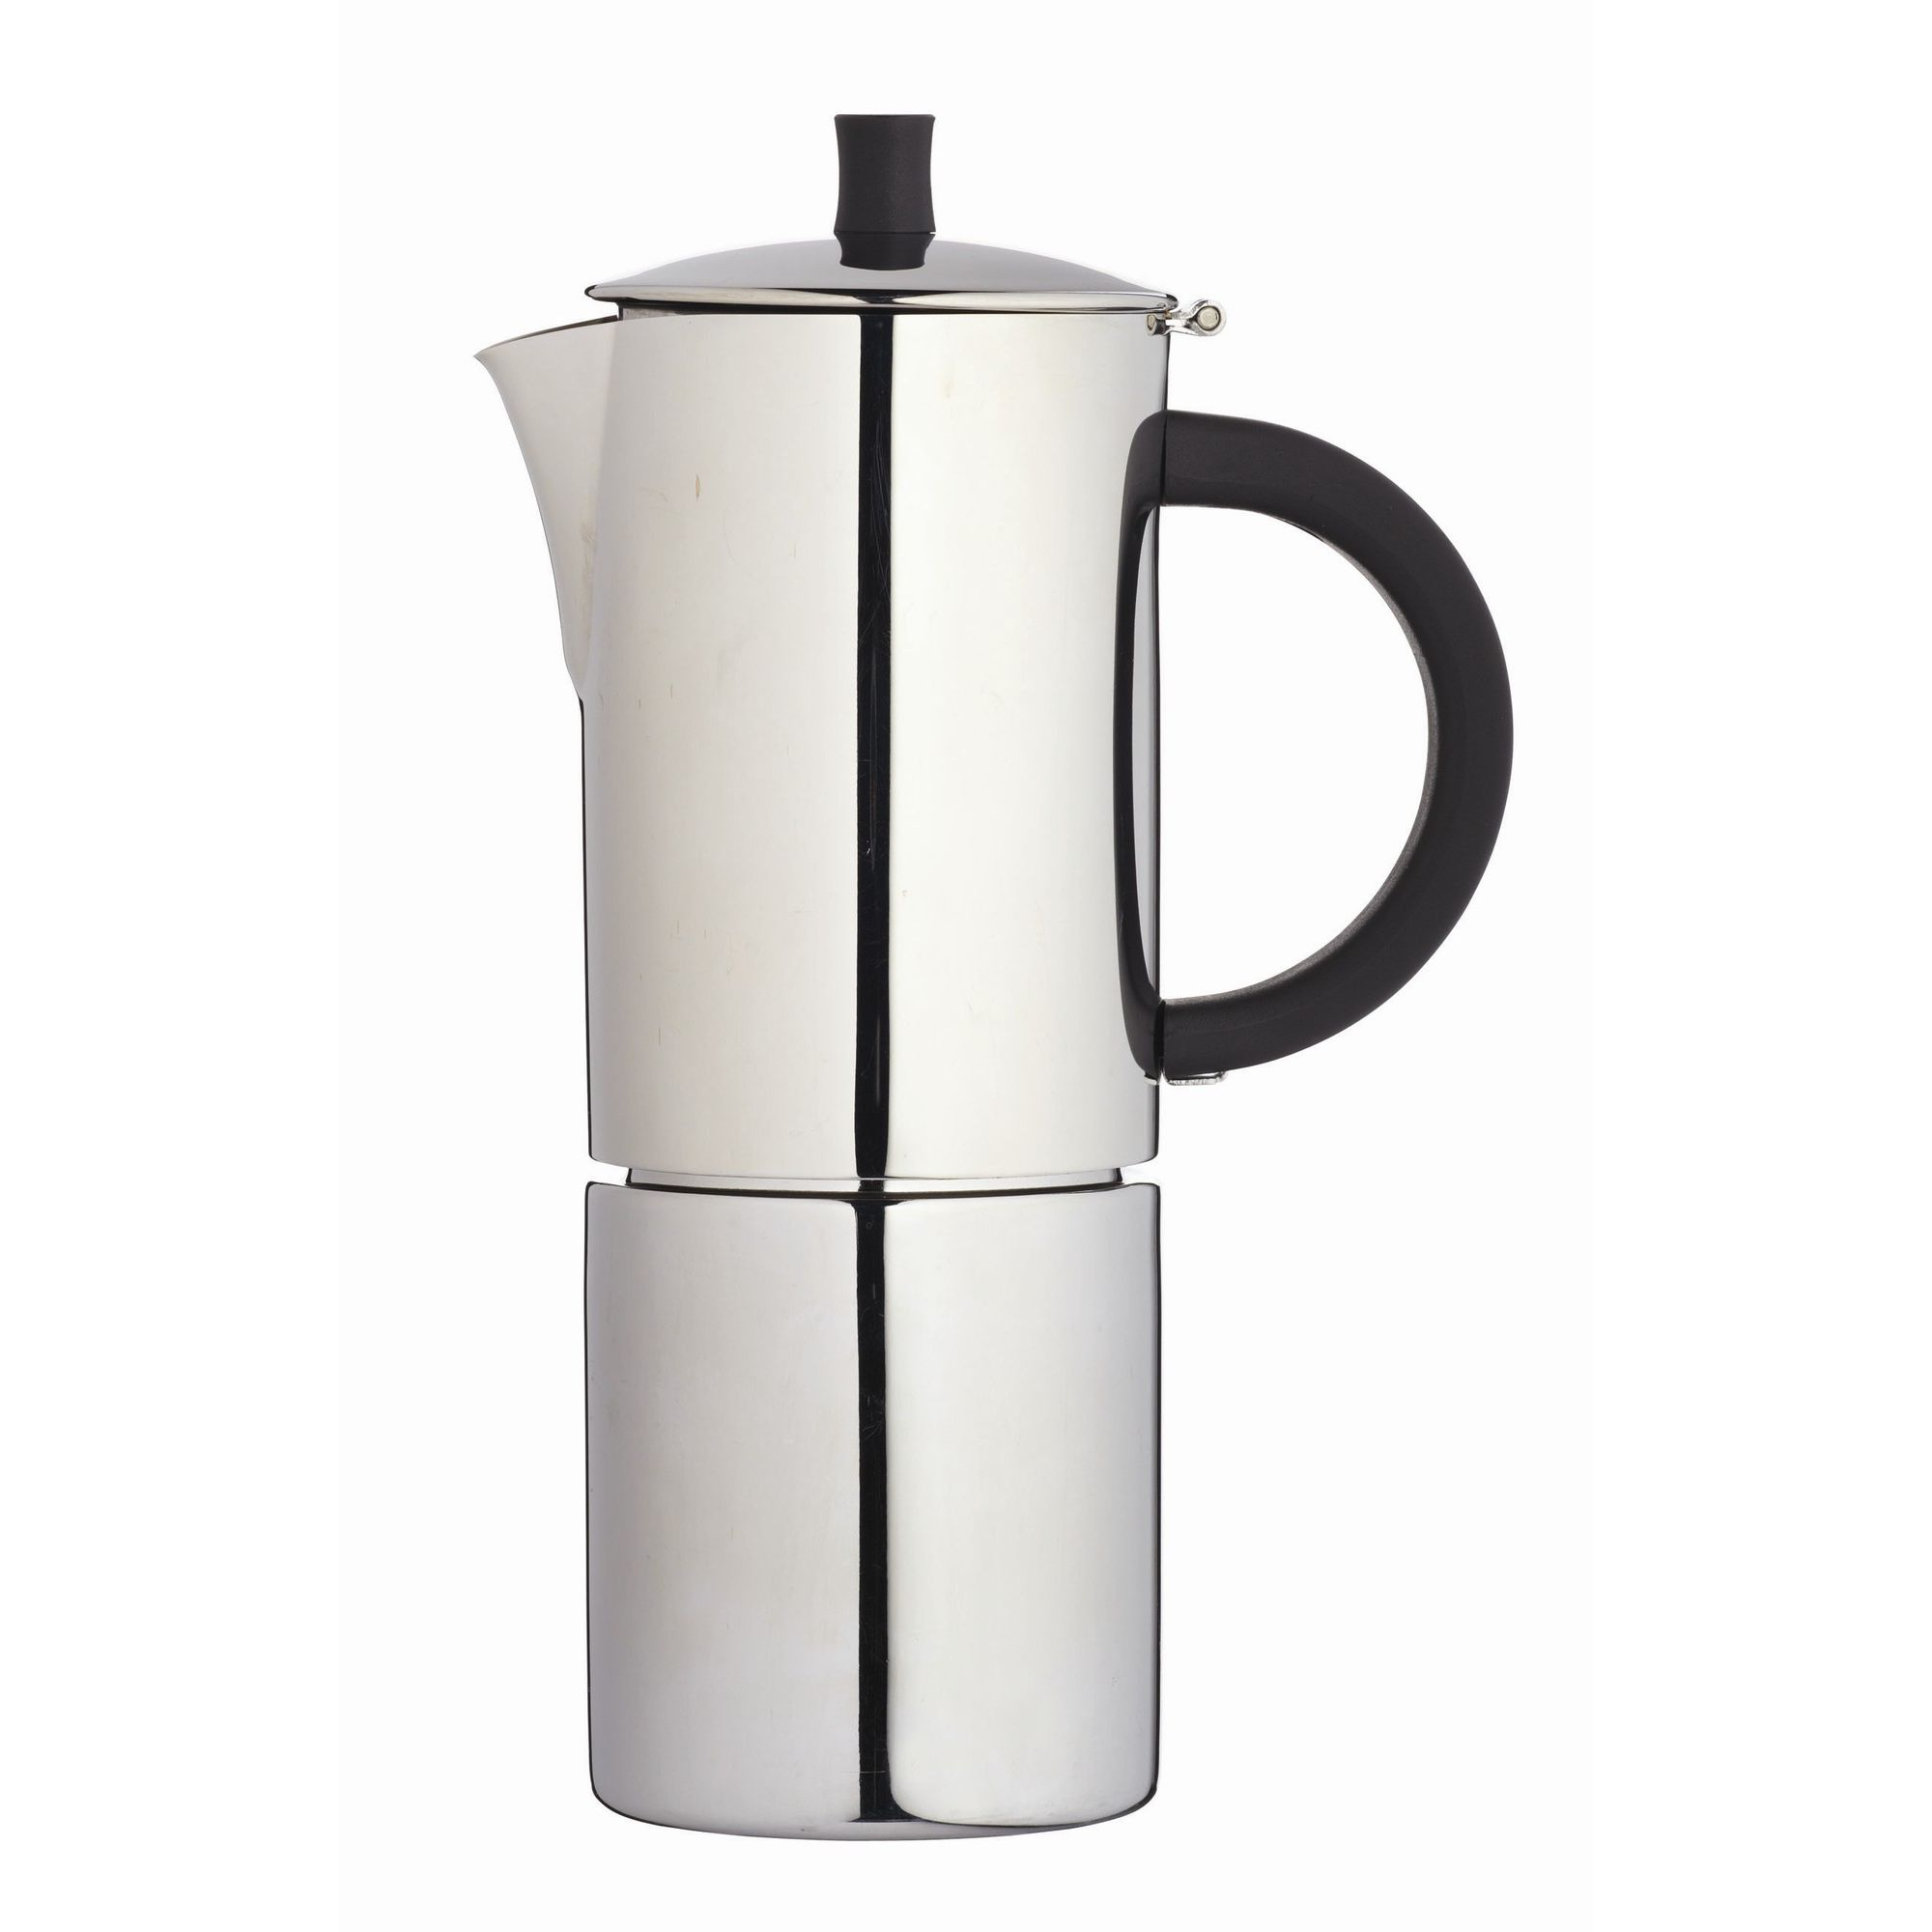 Kitchen Craft Le Xpress Hand Coffee Grinder